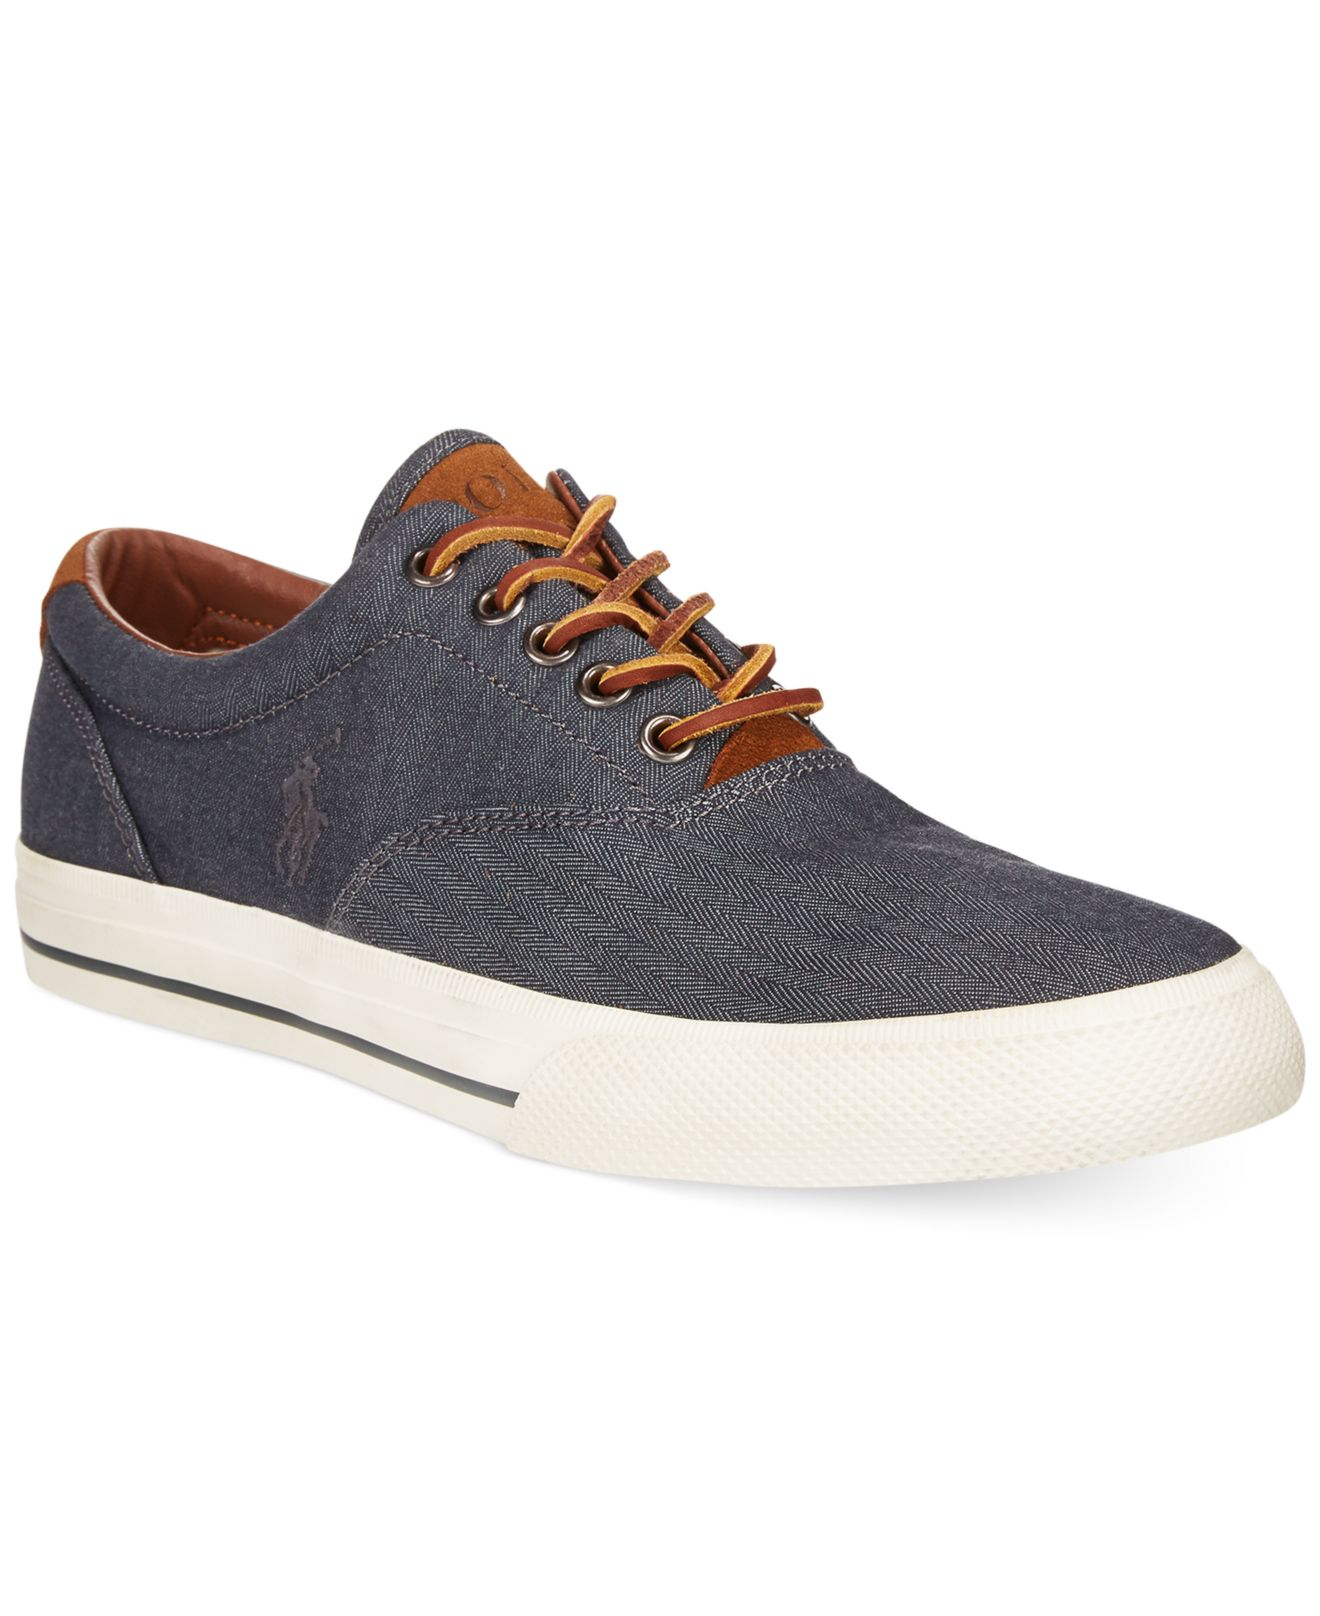 polo ralph lauren vaughn chambray herringbone sneakers in blue for men. Black Bedroom Furniture Sets. Home Design Ideas